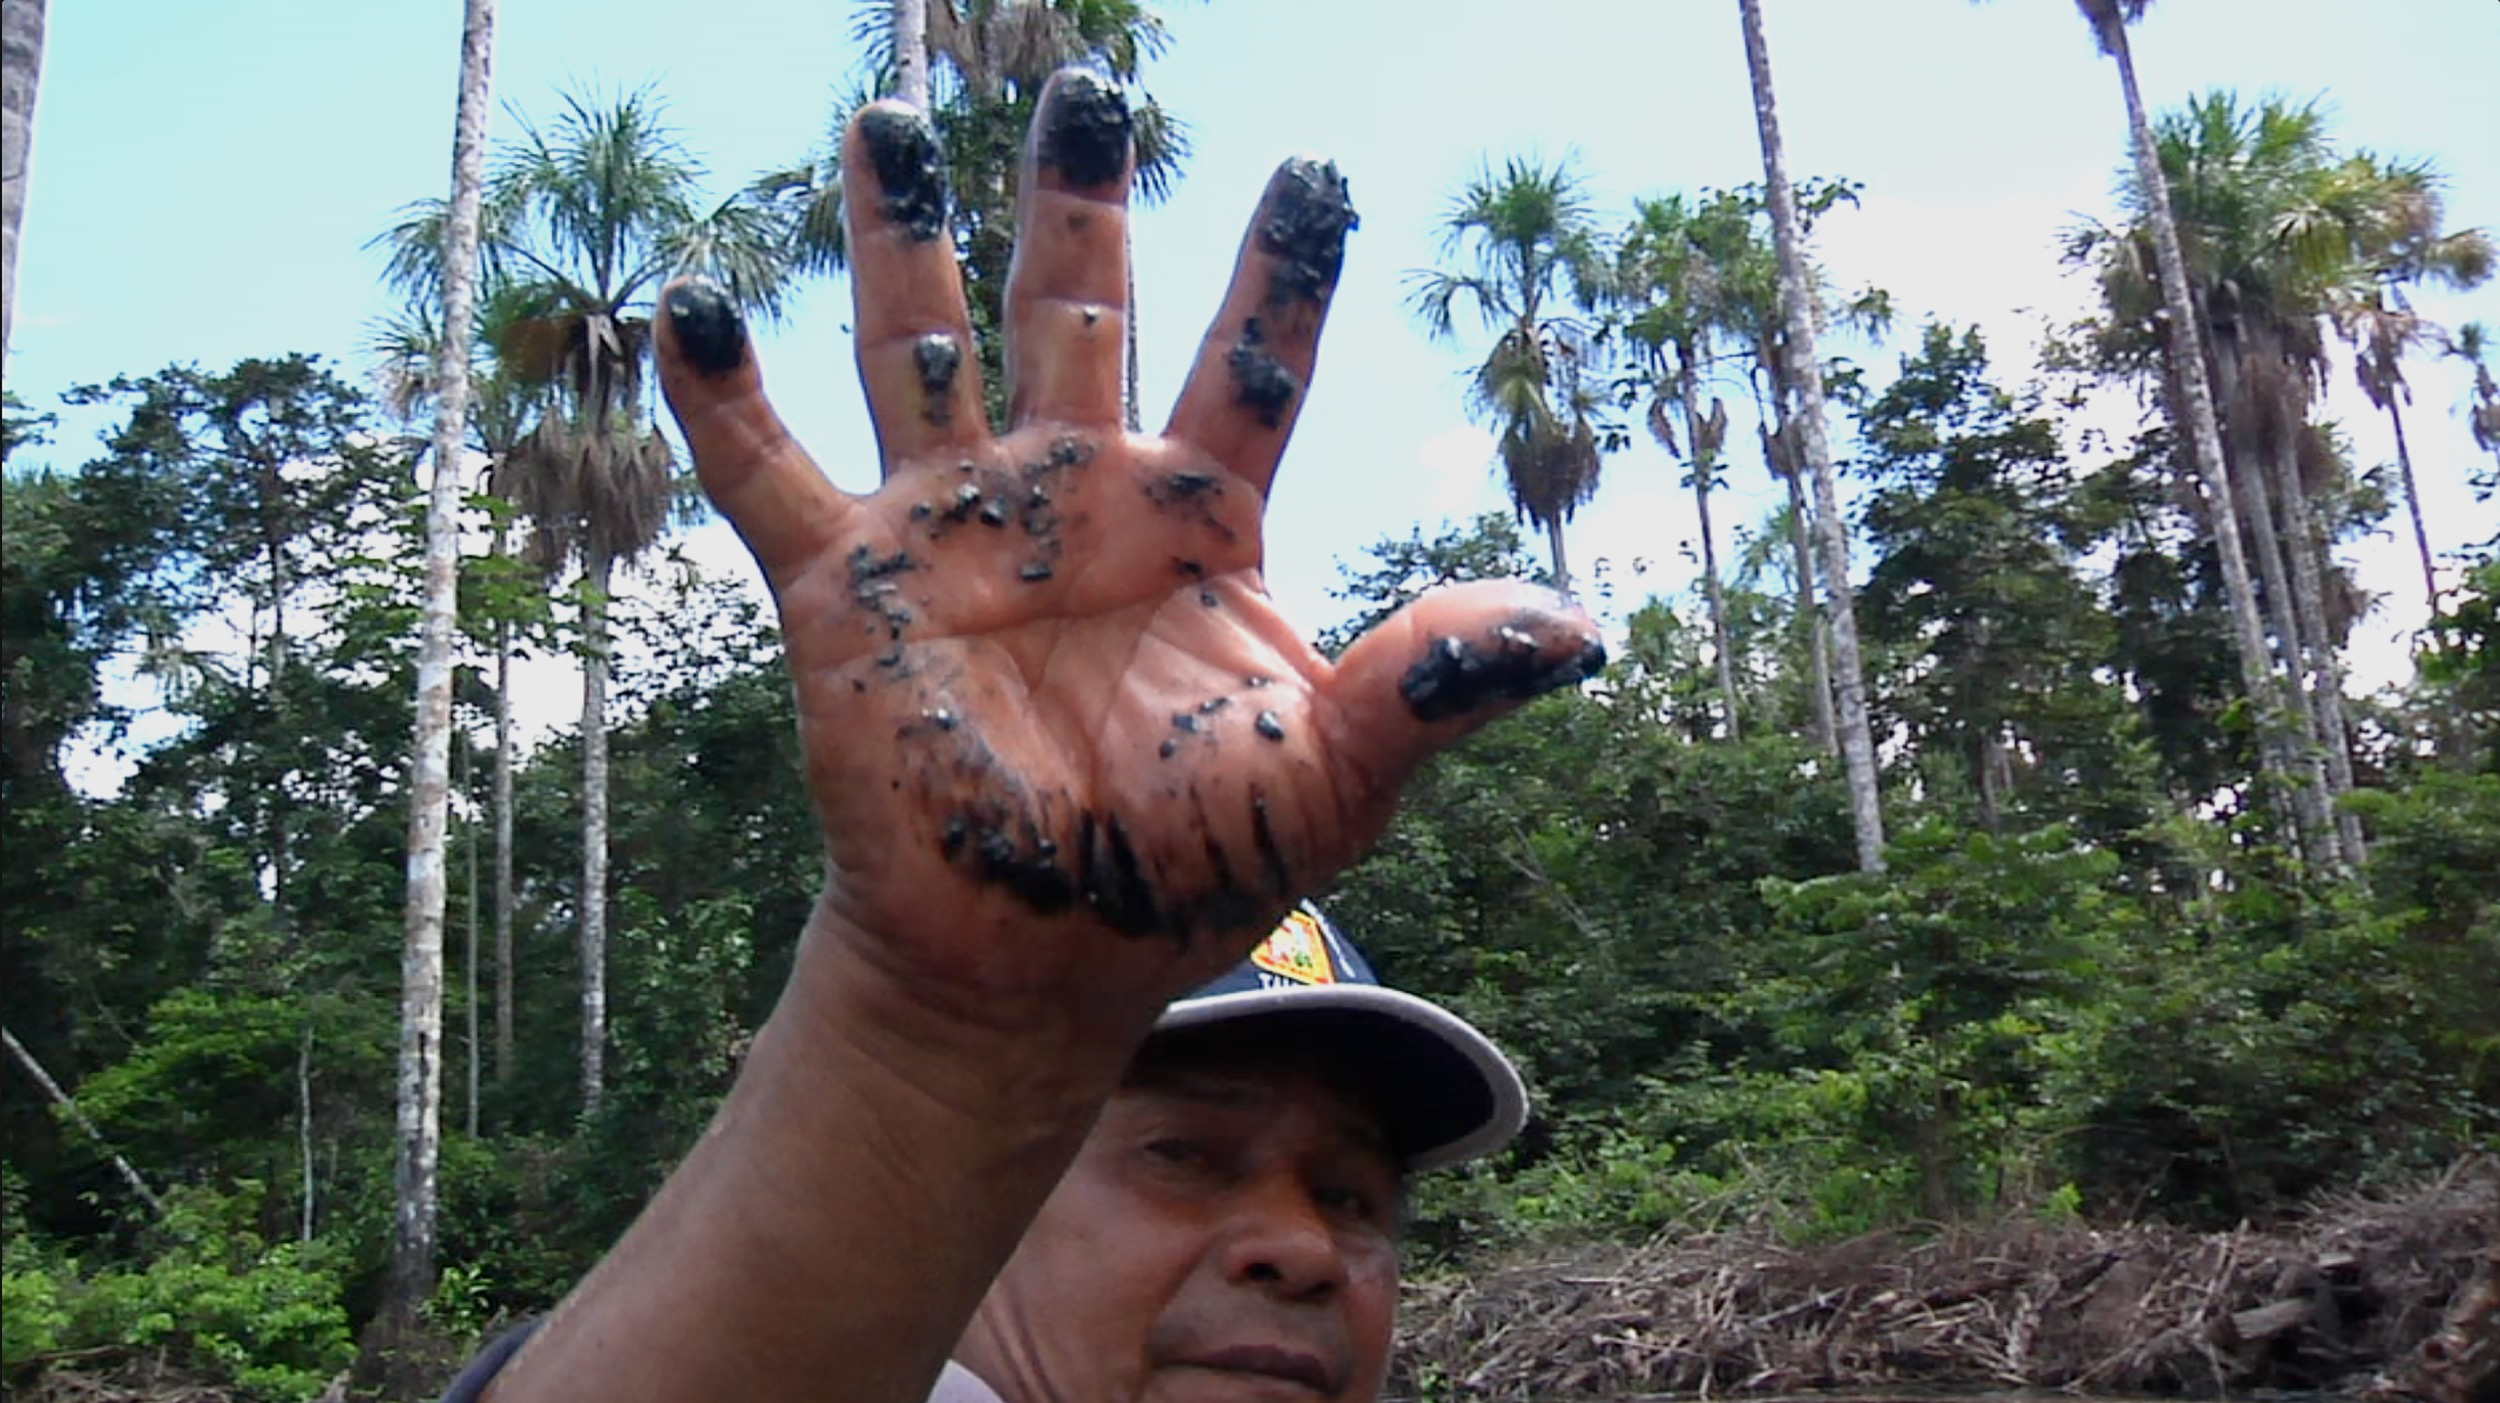 A local resident shows the oil residue left behind along an Amazon tributary from a pipeline spill that has supposedly been remediated.